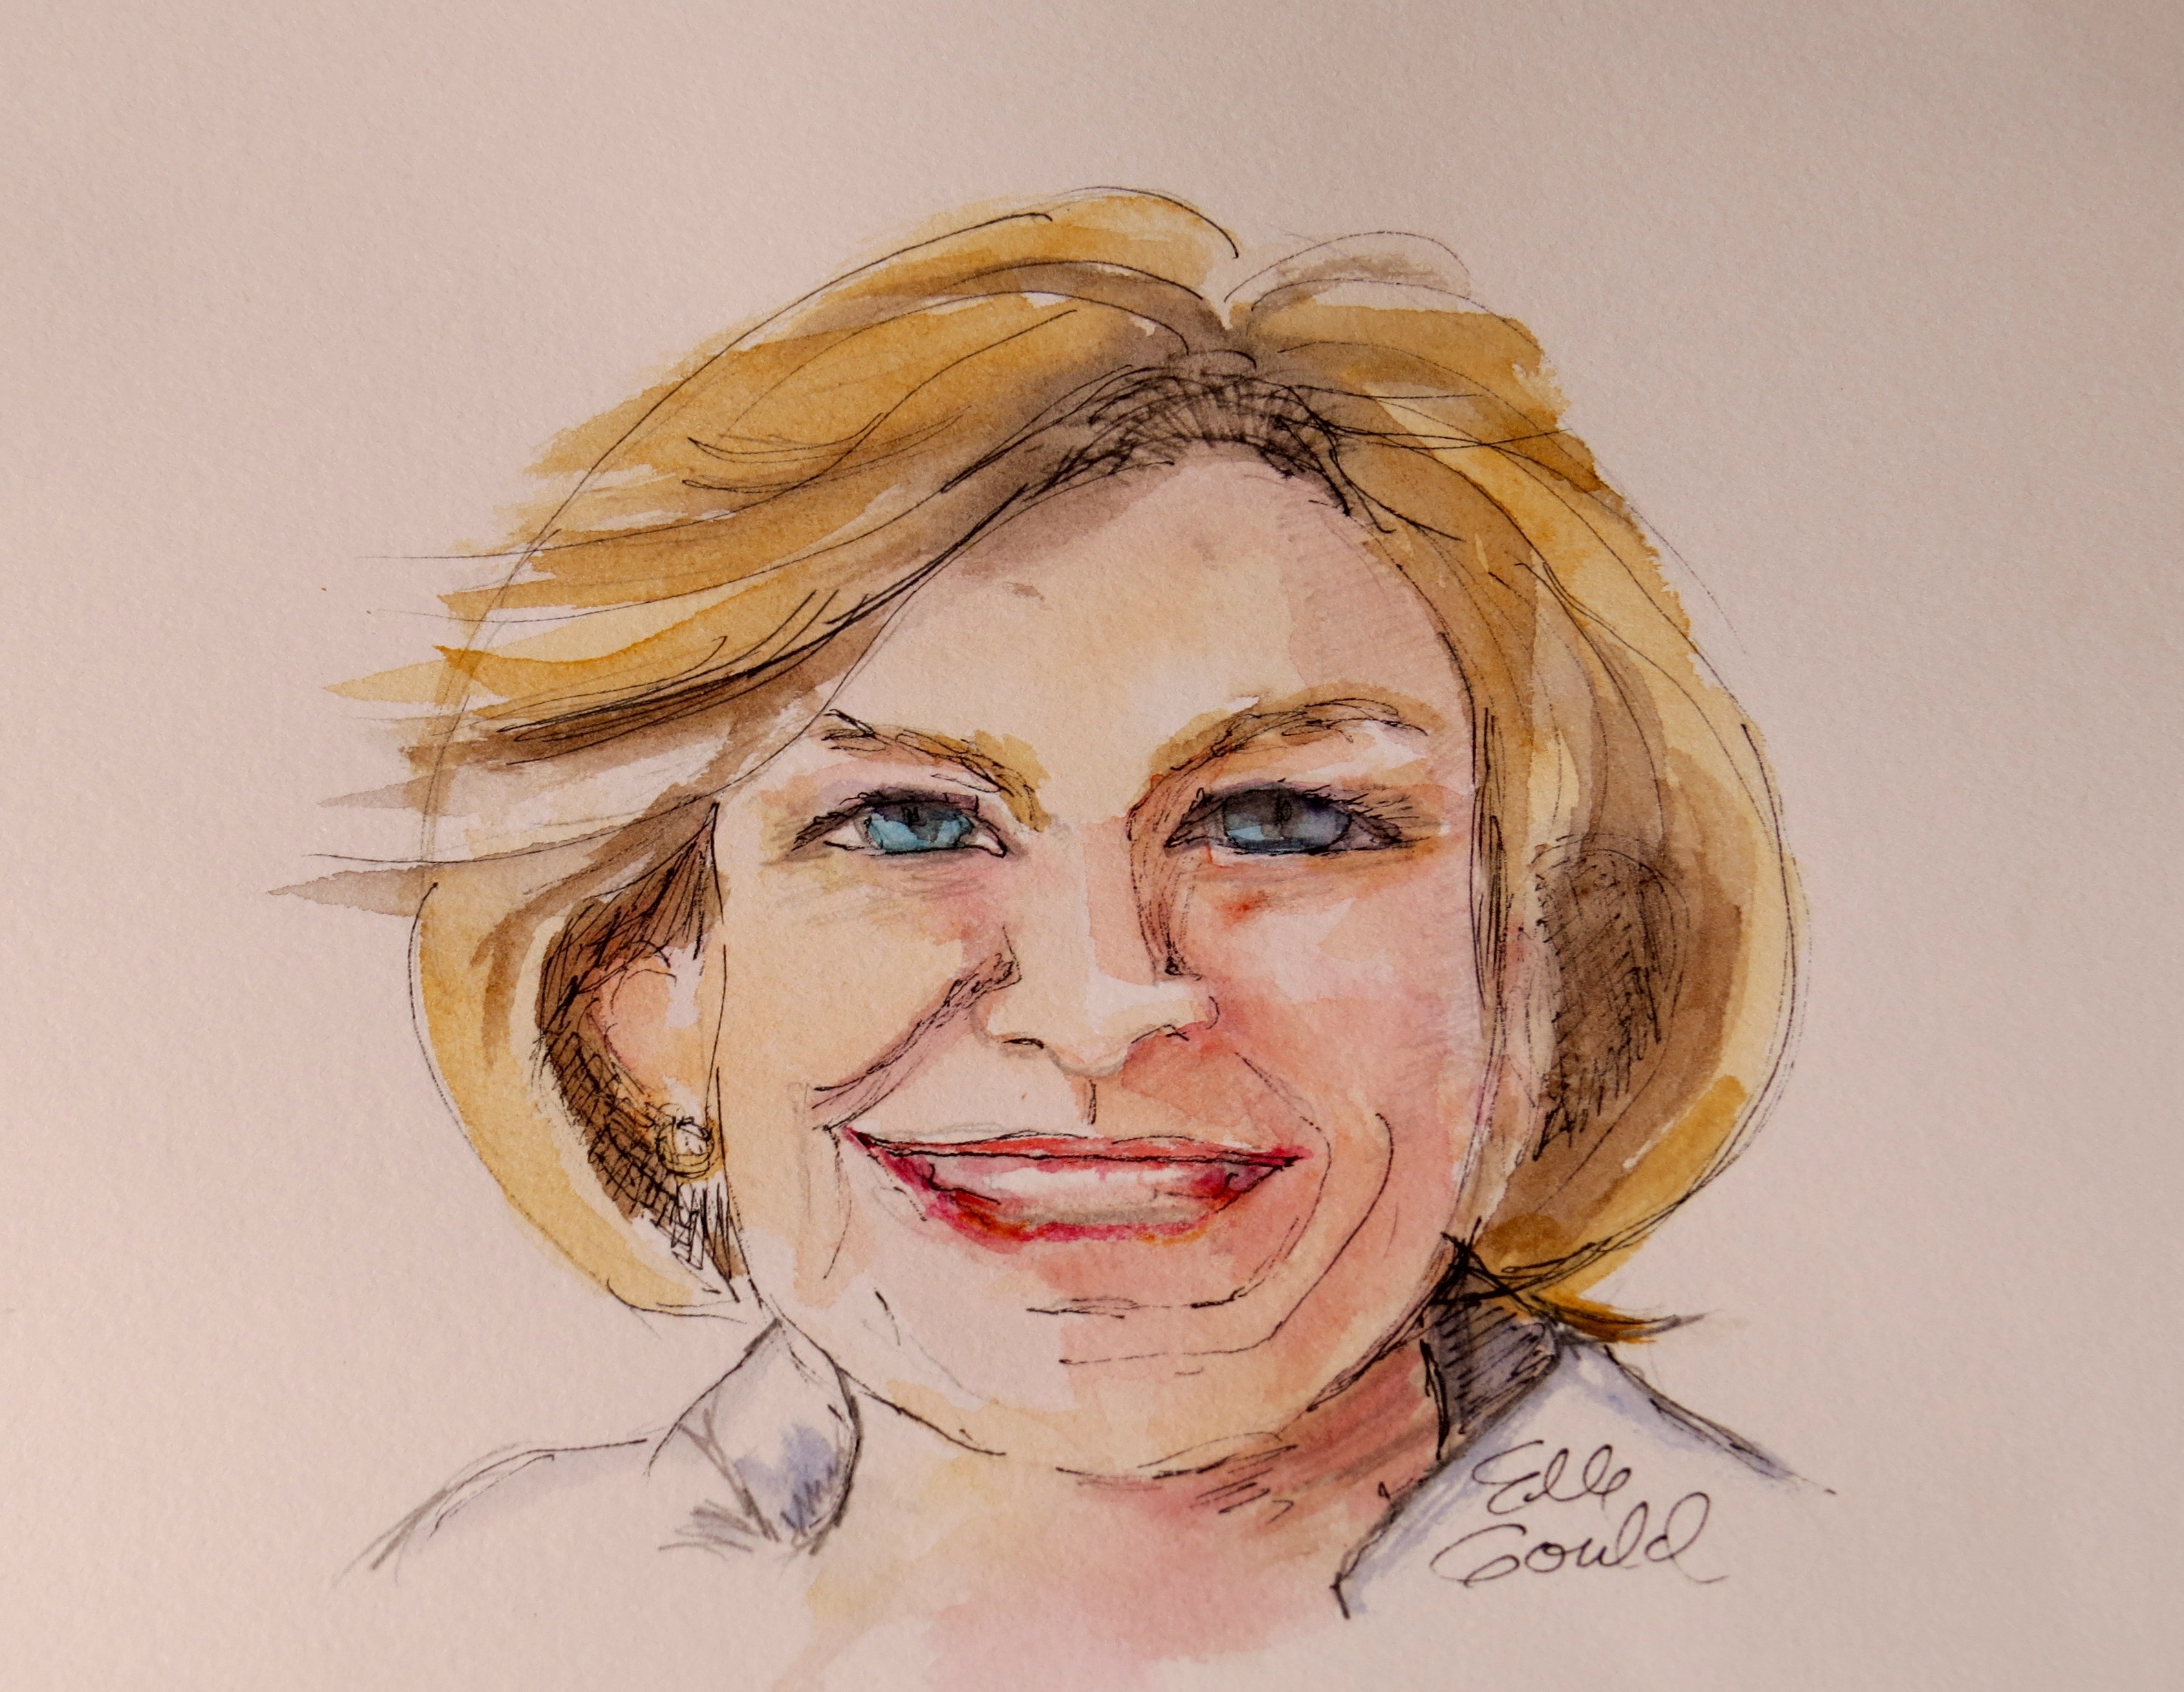 Celebrating French Fridays with Dorie, a watercolor by Ellie Gould